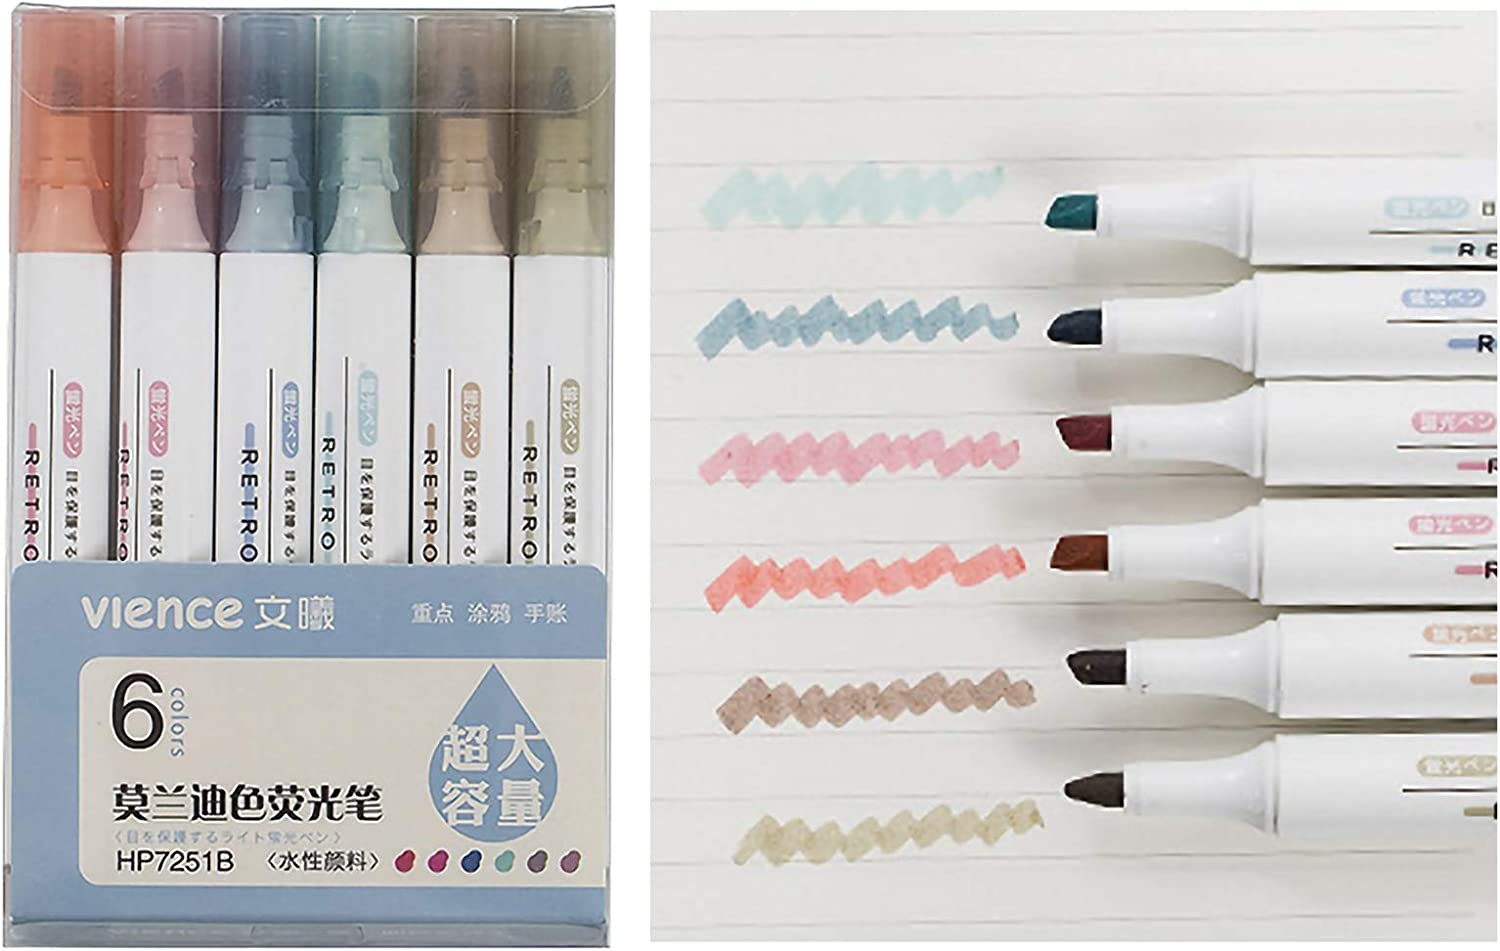 VIENCE Overseas parallel import regular item Highlighter 6 Colors Marker Chisel Pens Tip Quantity limited